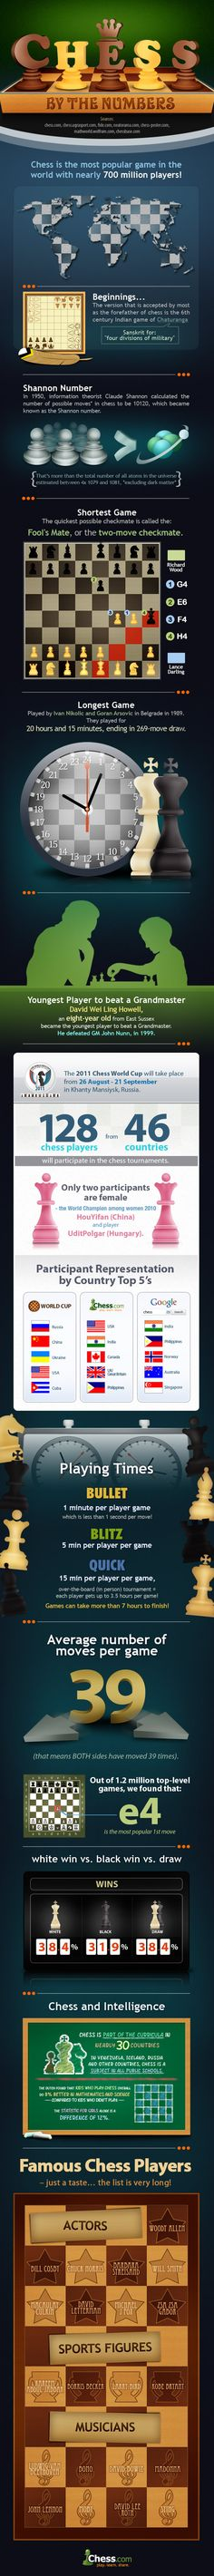 Chess is the most popular game in the world - Find out what you don't know about it.